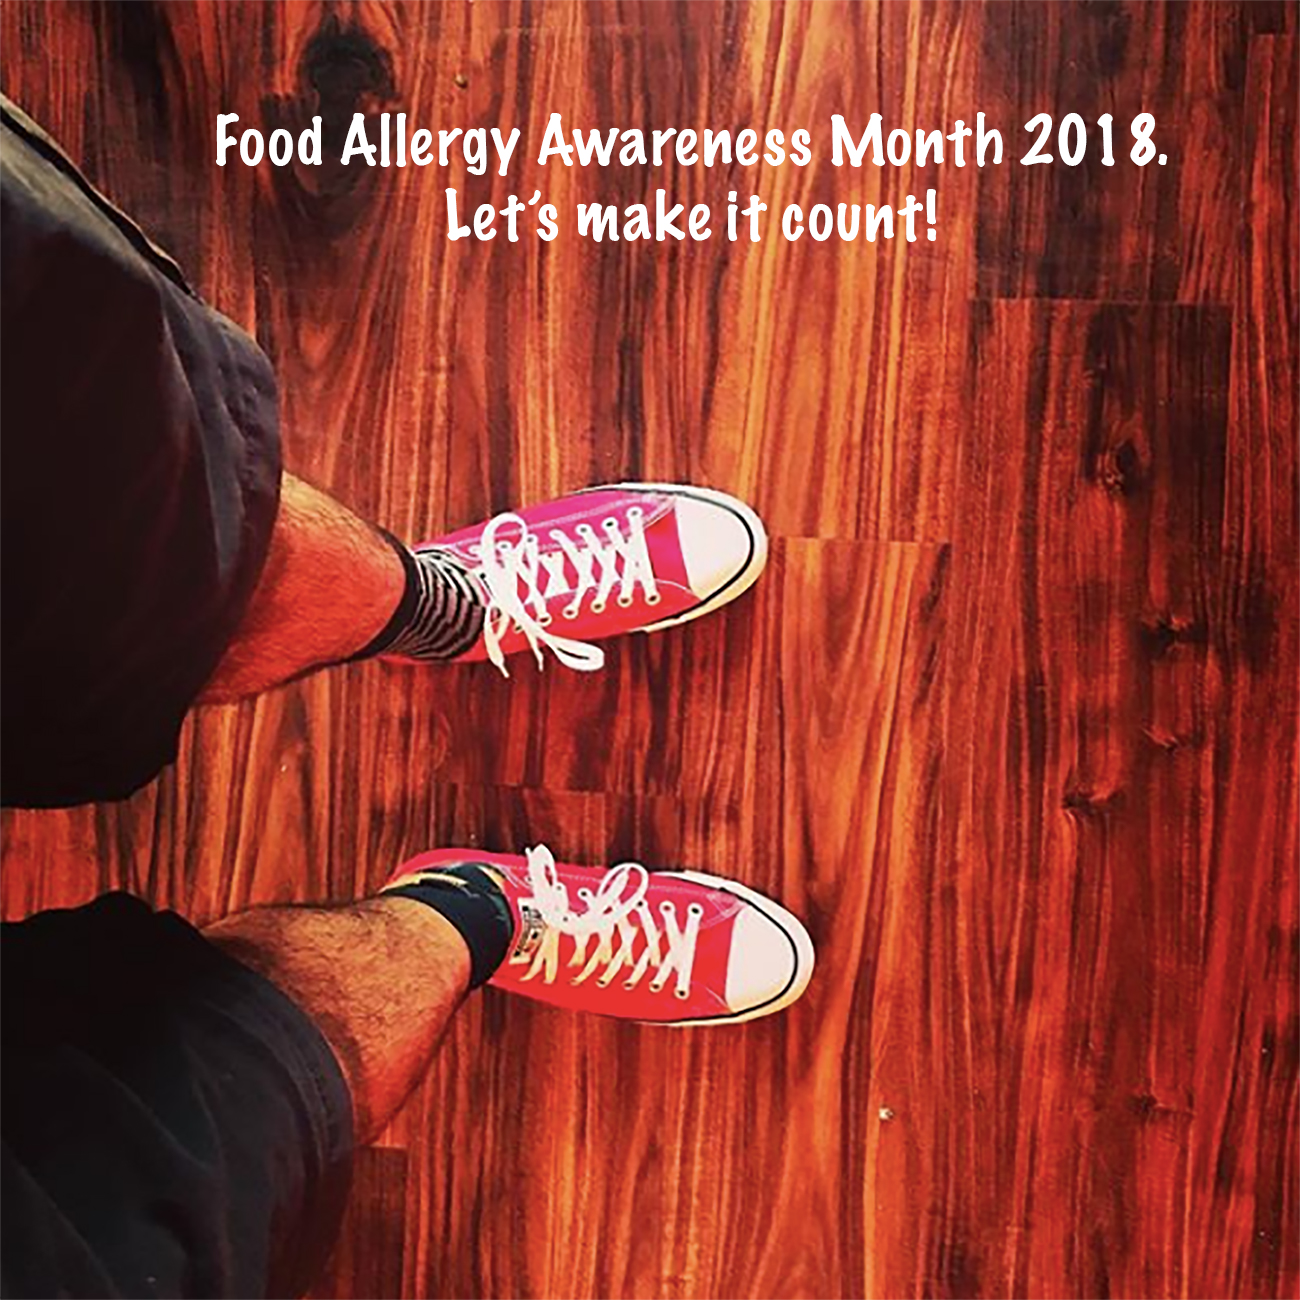 On the first day of #foodallergyawareness month, I wore my #redsneakersforoakley!